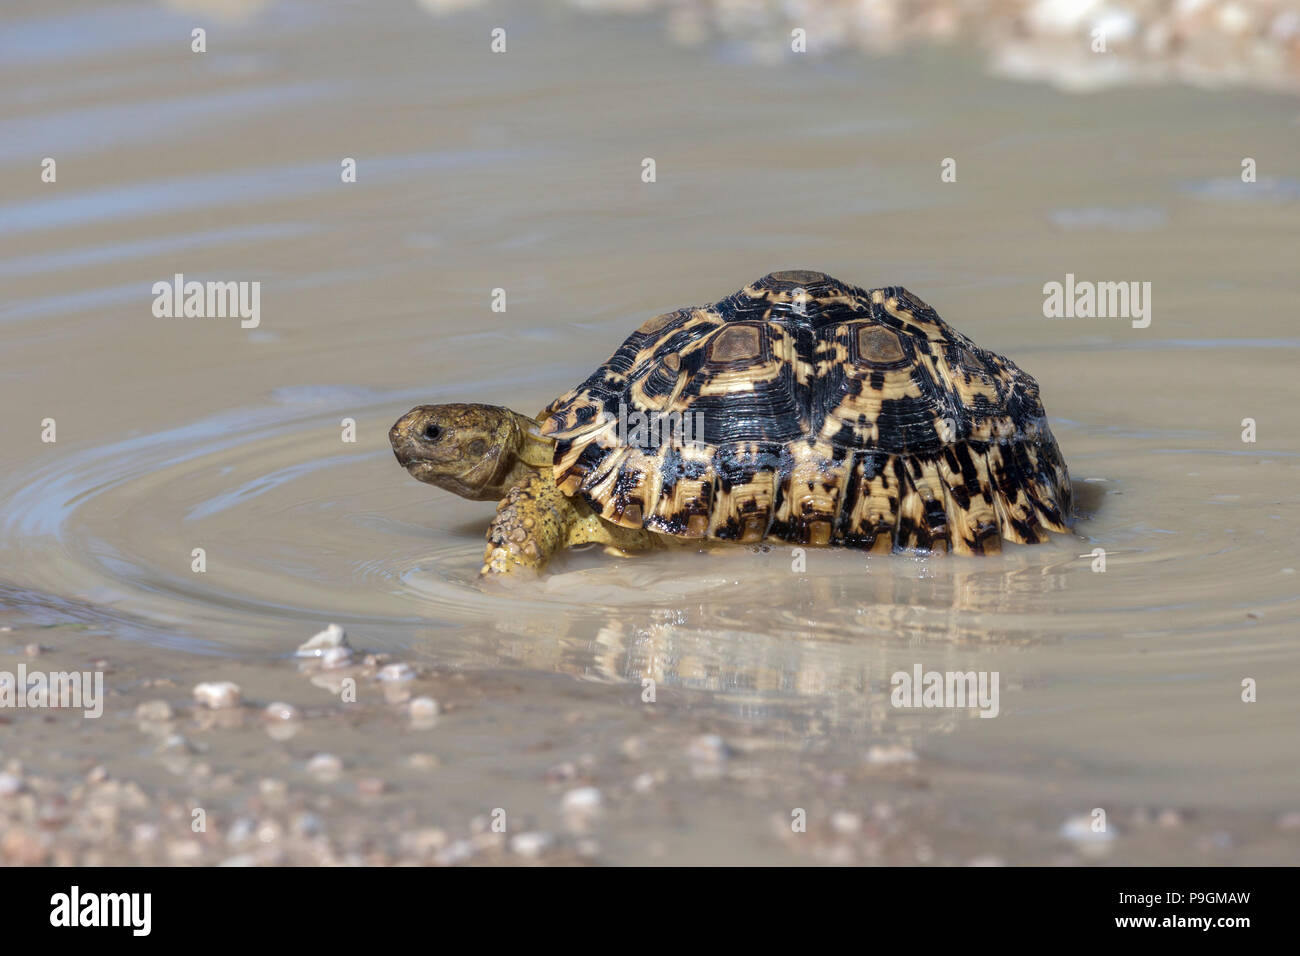 Leopard (mountain) tortoise (Stigmochelys pardalis) in puddle after rain, Kgalagadi transfrontier park, South Africa, - Stock Image